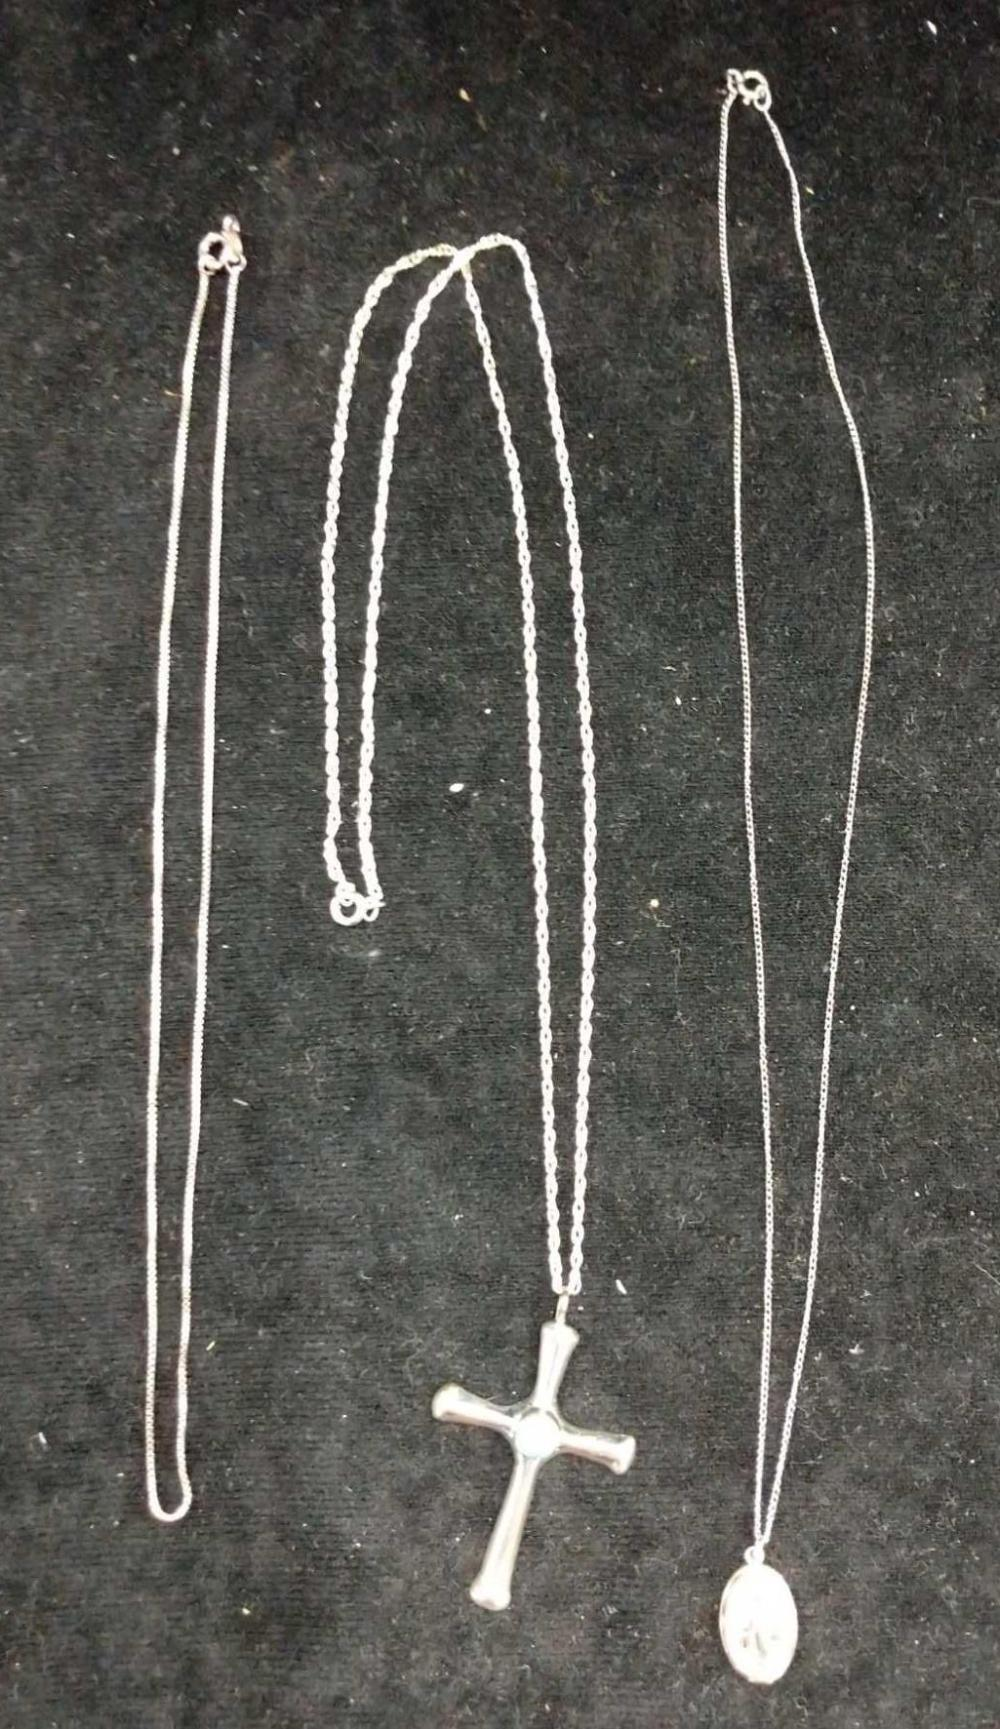 STERLING SILVER NECKLACES - 3 ITEMS